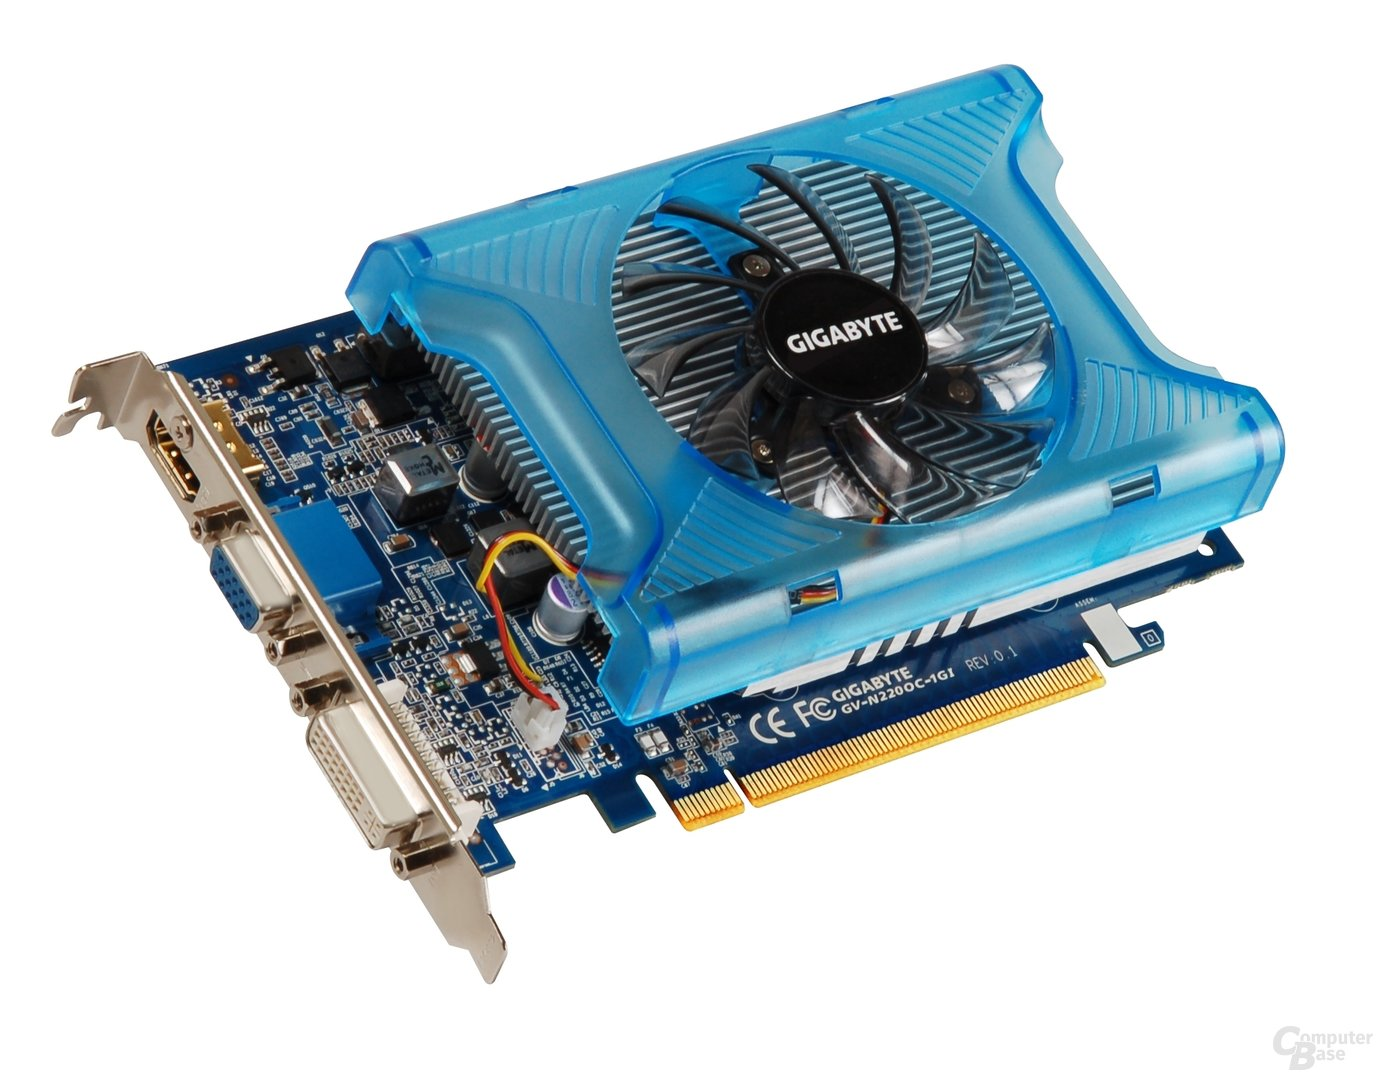 Gigabyte GeForce GT 220